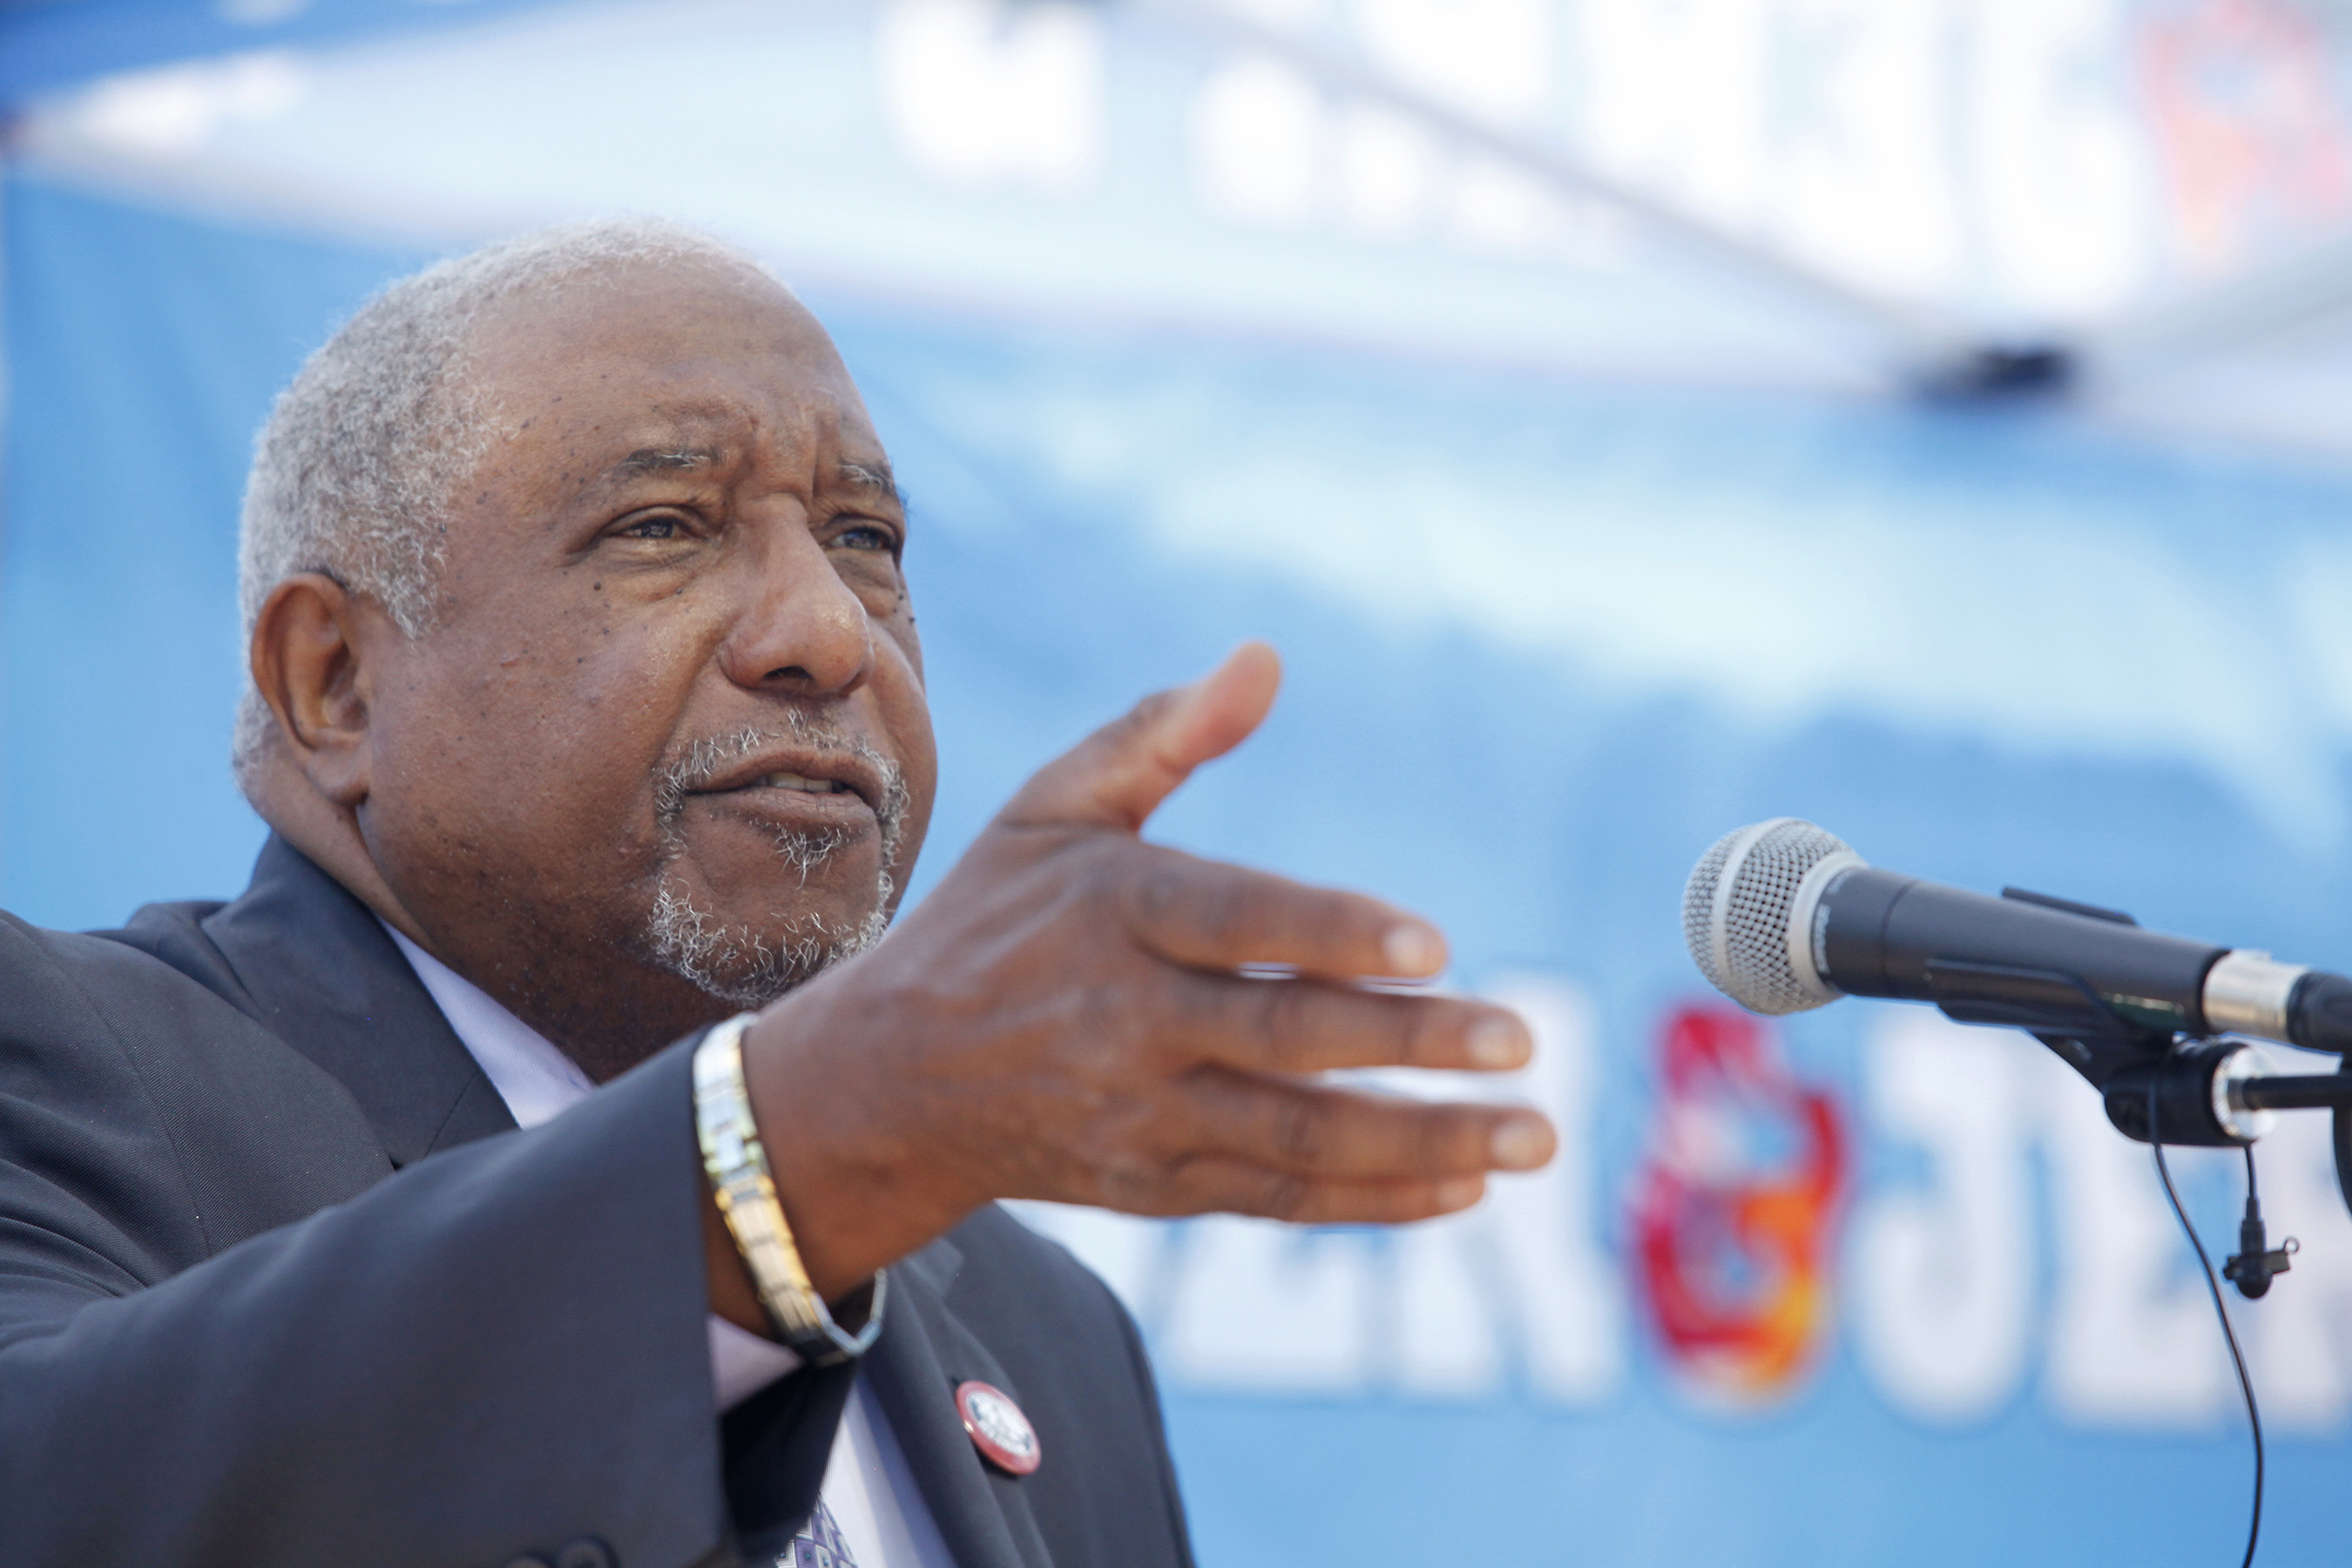 Dr. Bernard LaFayette shared his perspective as a long-time civil rights activist at the opening of an exhibit on the 1968 Poor People's Campaign at Ben & Jerry's Vermont factory.